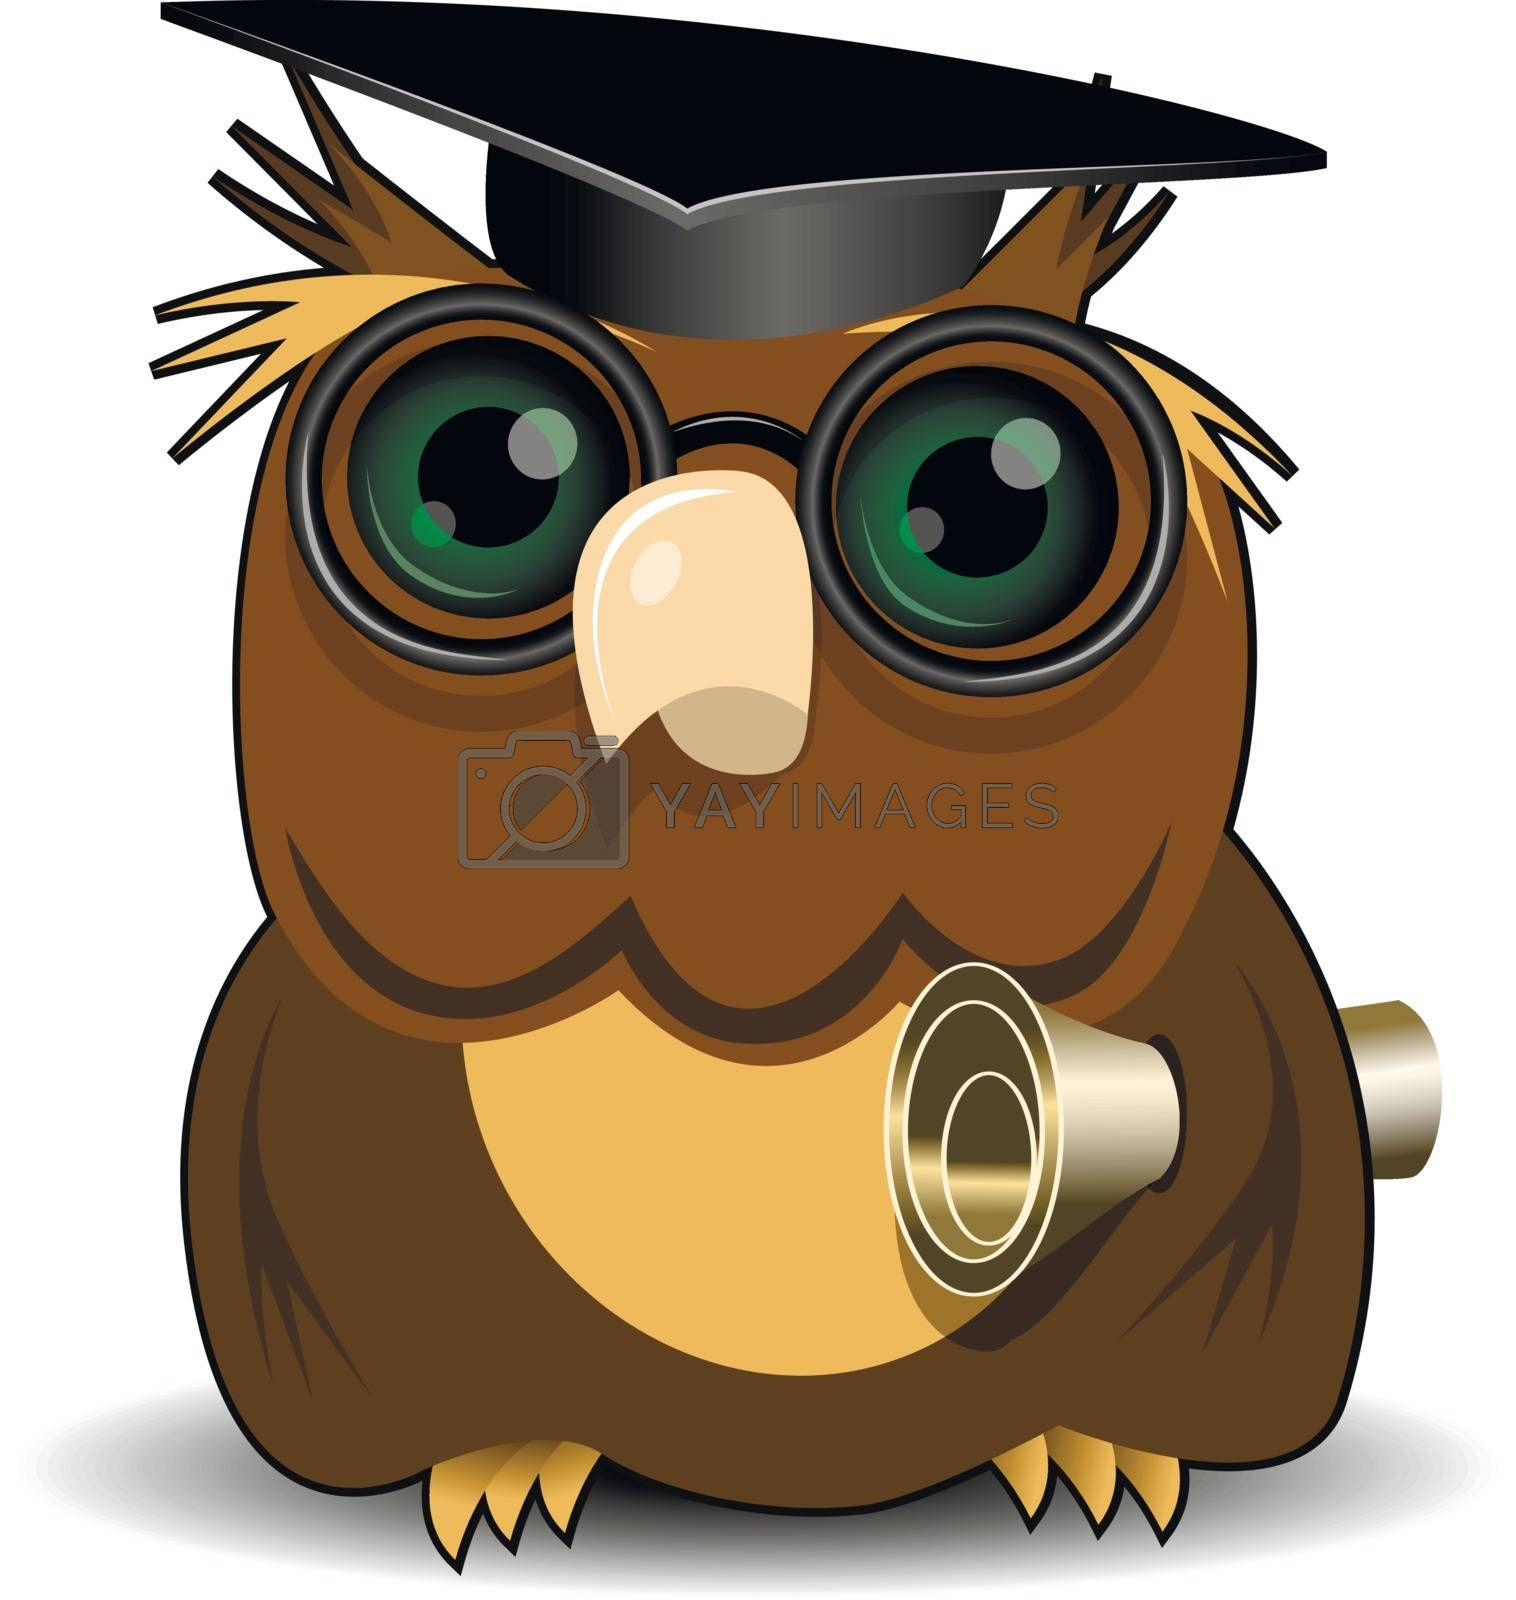 Illustration Owl scientist with green eye on white background